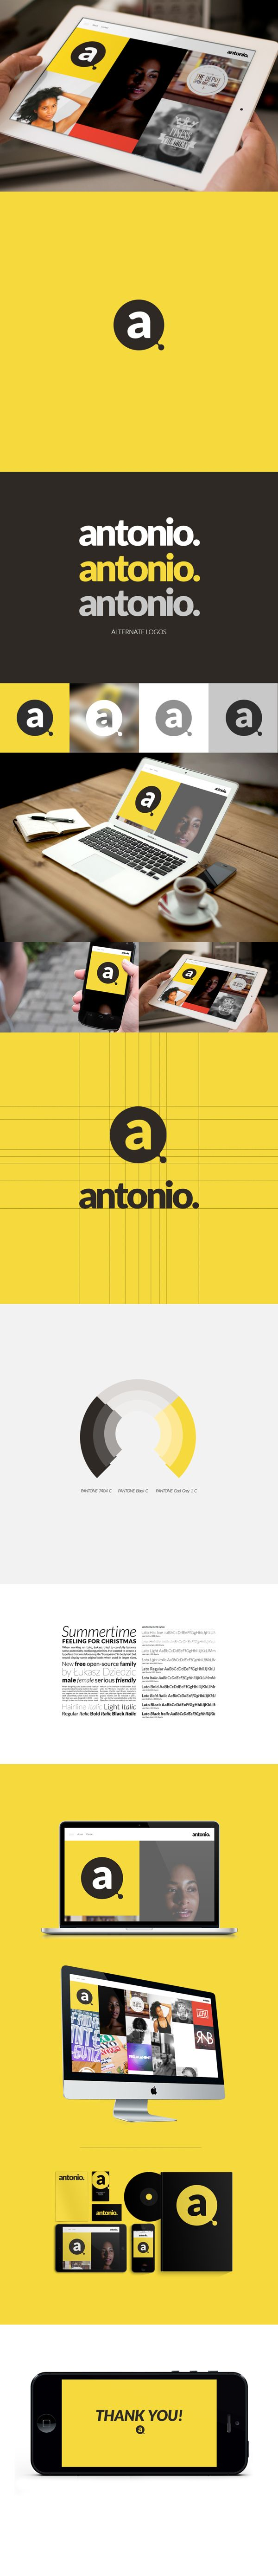 Self Branding by Antonio DeVon Johnson, via Behance